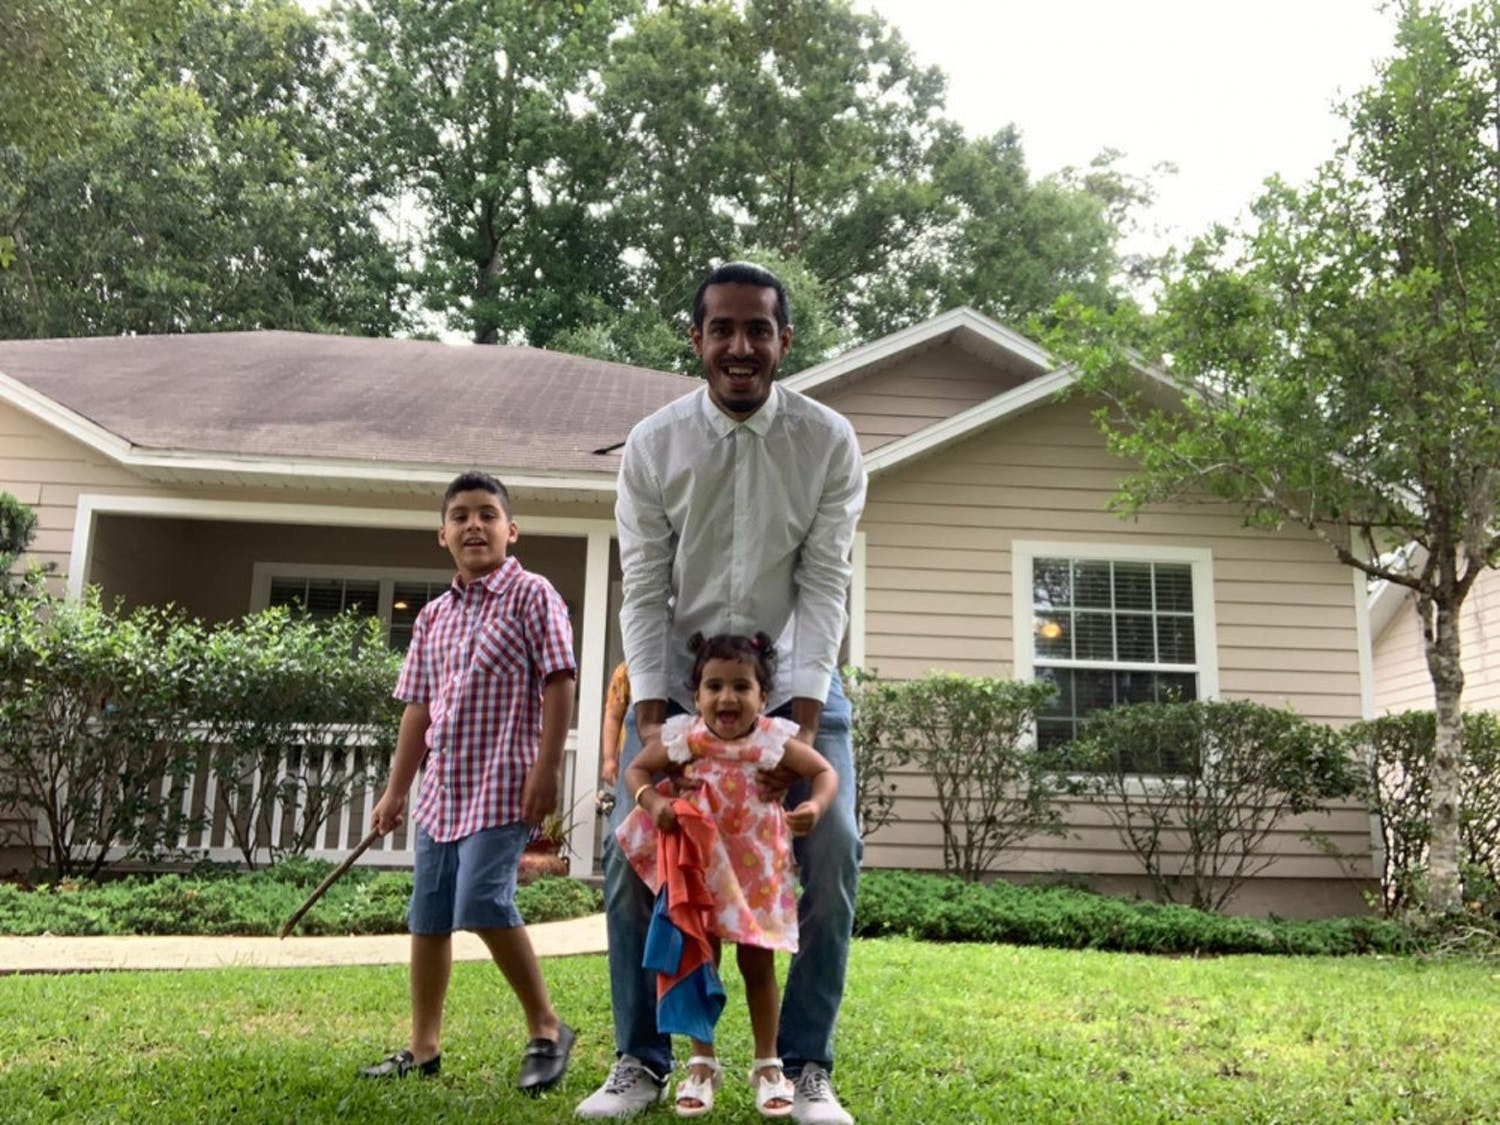 Nawaf Alrogiaee celebrates Eid al-Fitr from his family's Gainesville home alongside his two children, Ammar, 7, and Alia, 1.